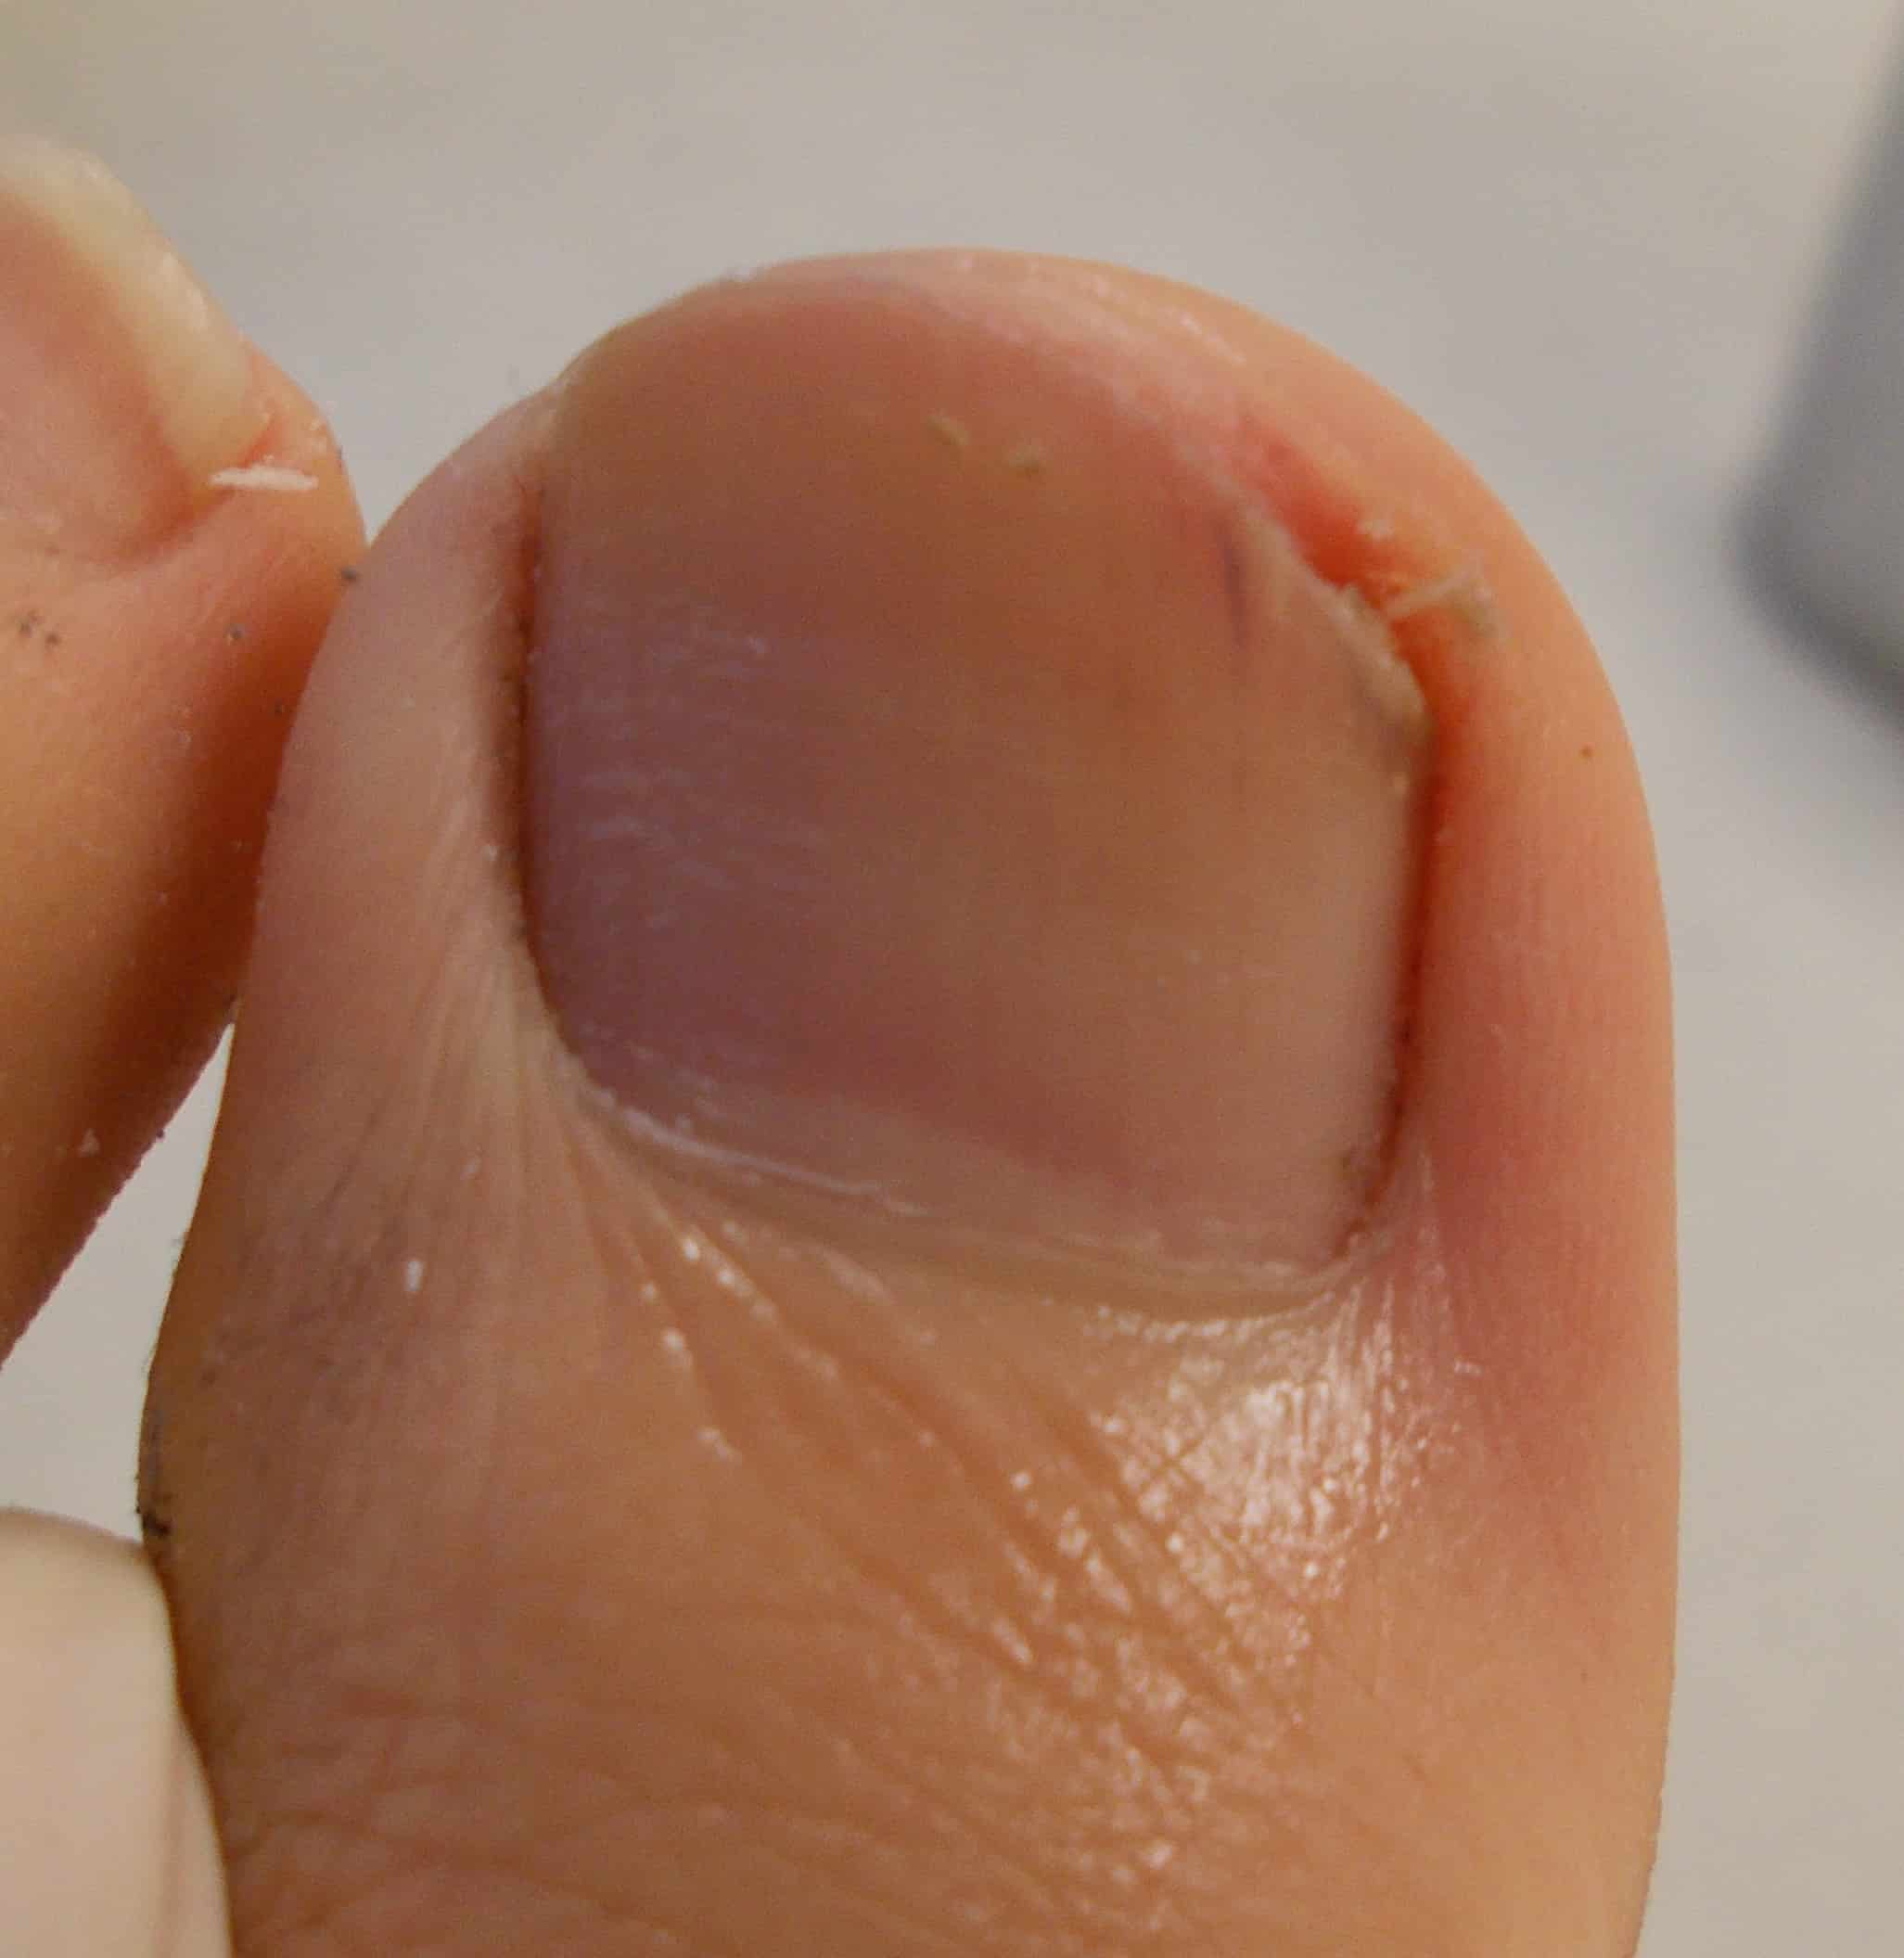 photo of fungal nail pt 2 after